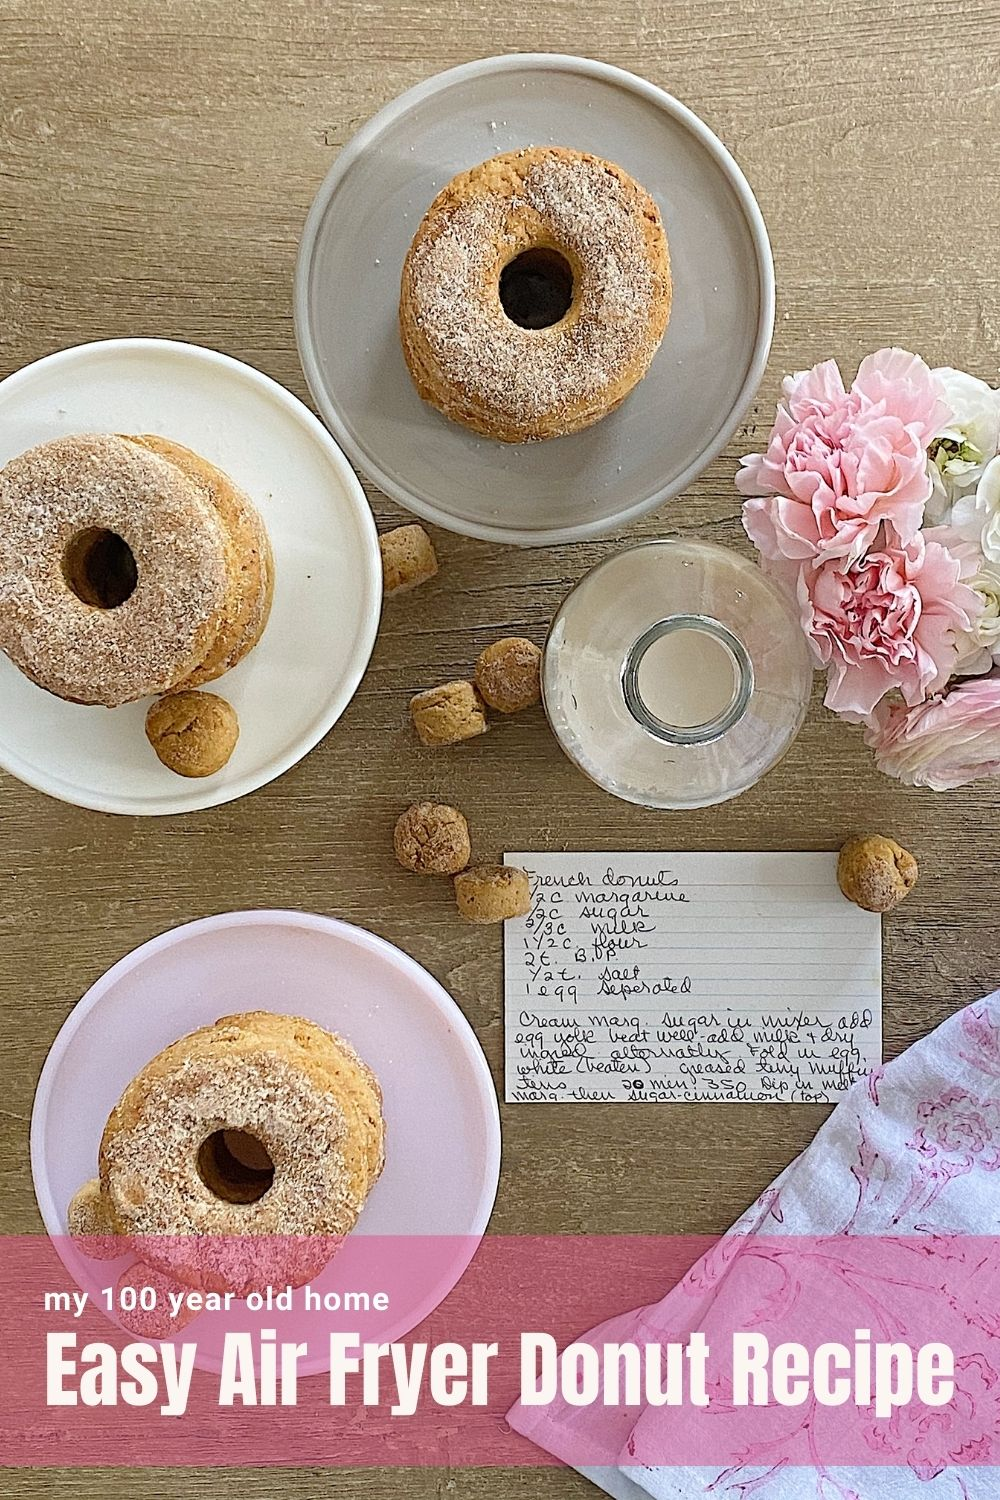 Today I modified my Mom's French Donut recipe into an Easy Air Fryer Donut recipe. This no yeast recipe is made from scratch, is gluten-free, and cooked in my Ninja Foodi air fryer. These sugar-cinnamon donuts (and donut holes) are delicious.